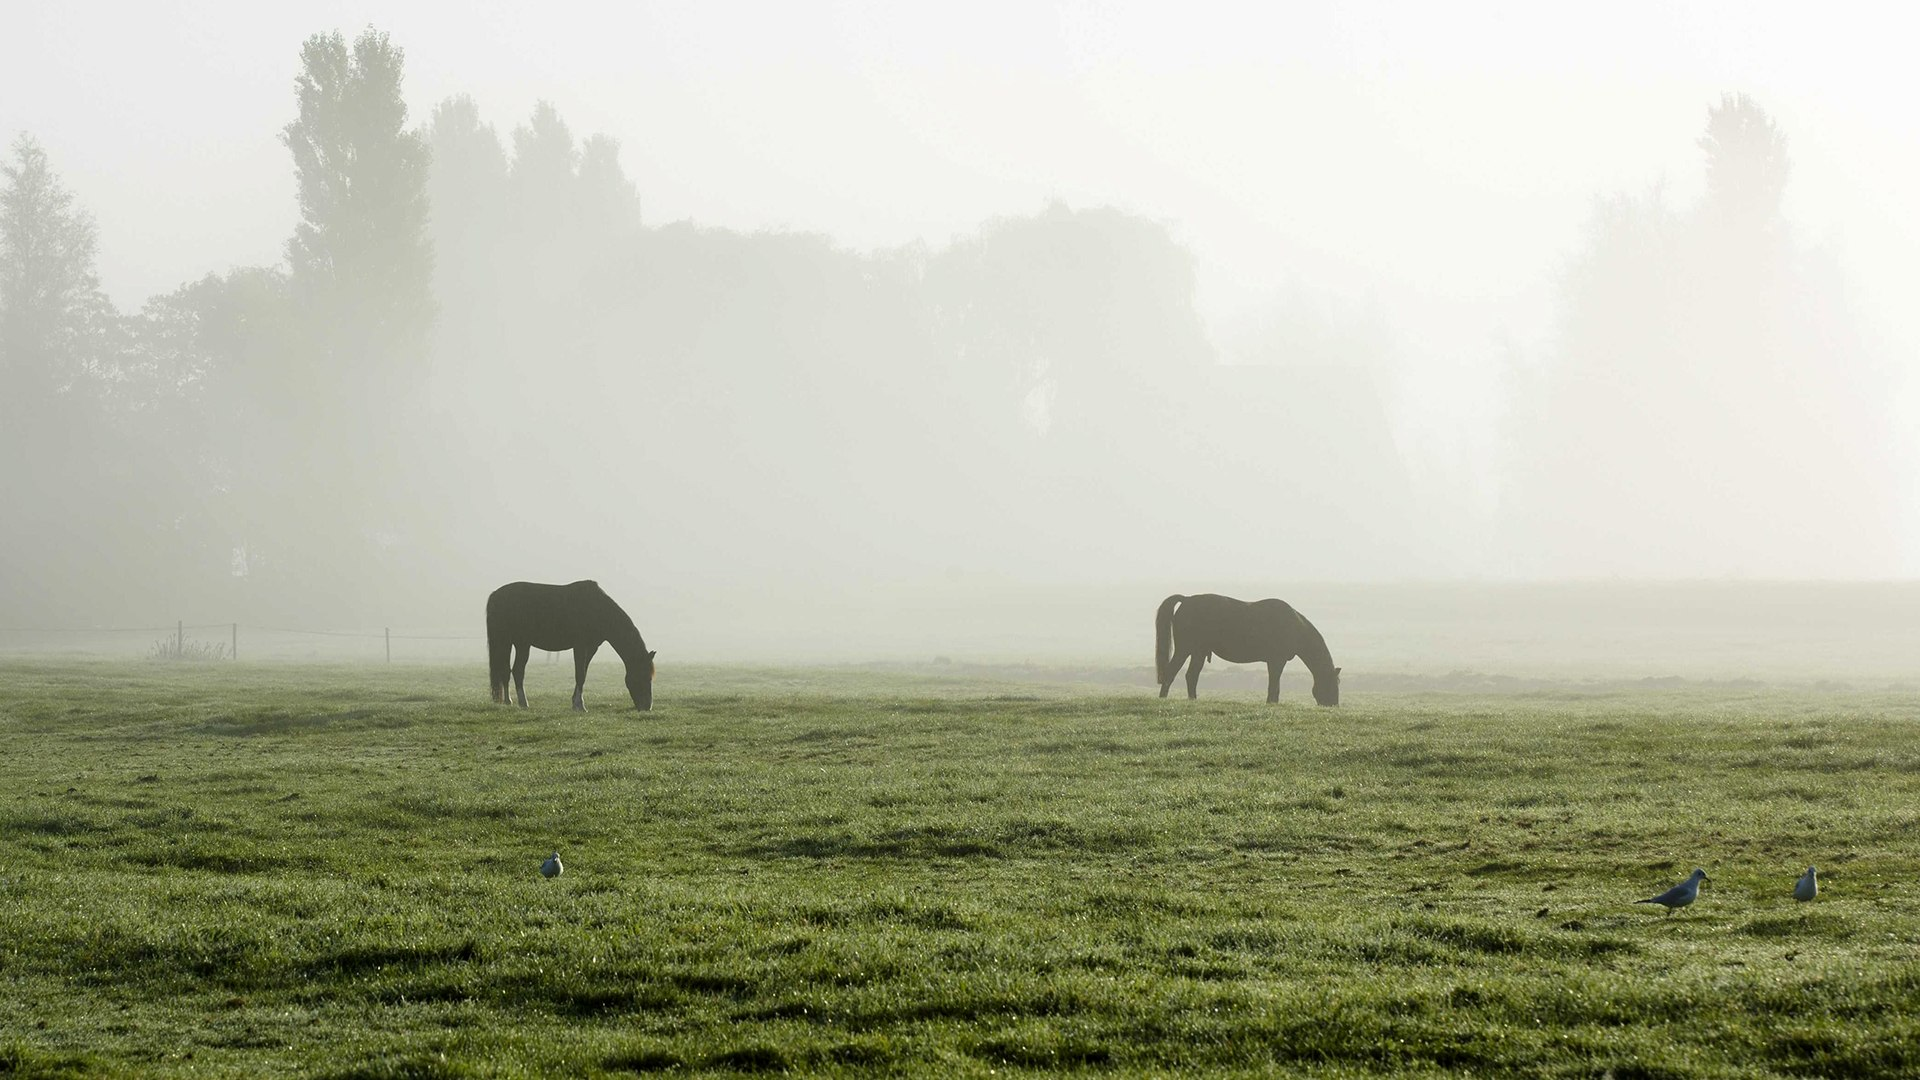 Image: Morning fog in the Netherlands